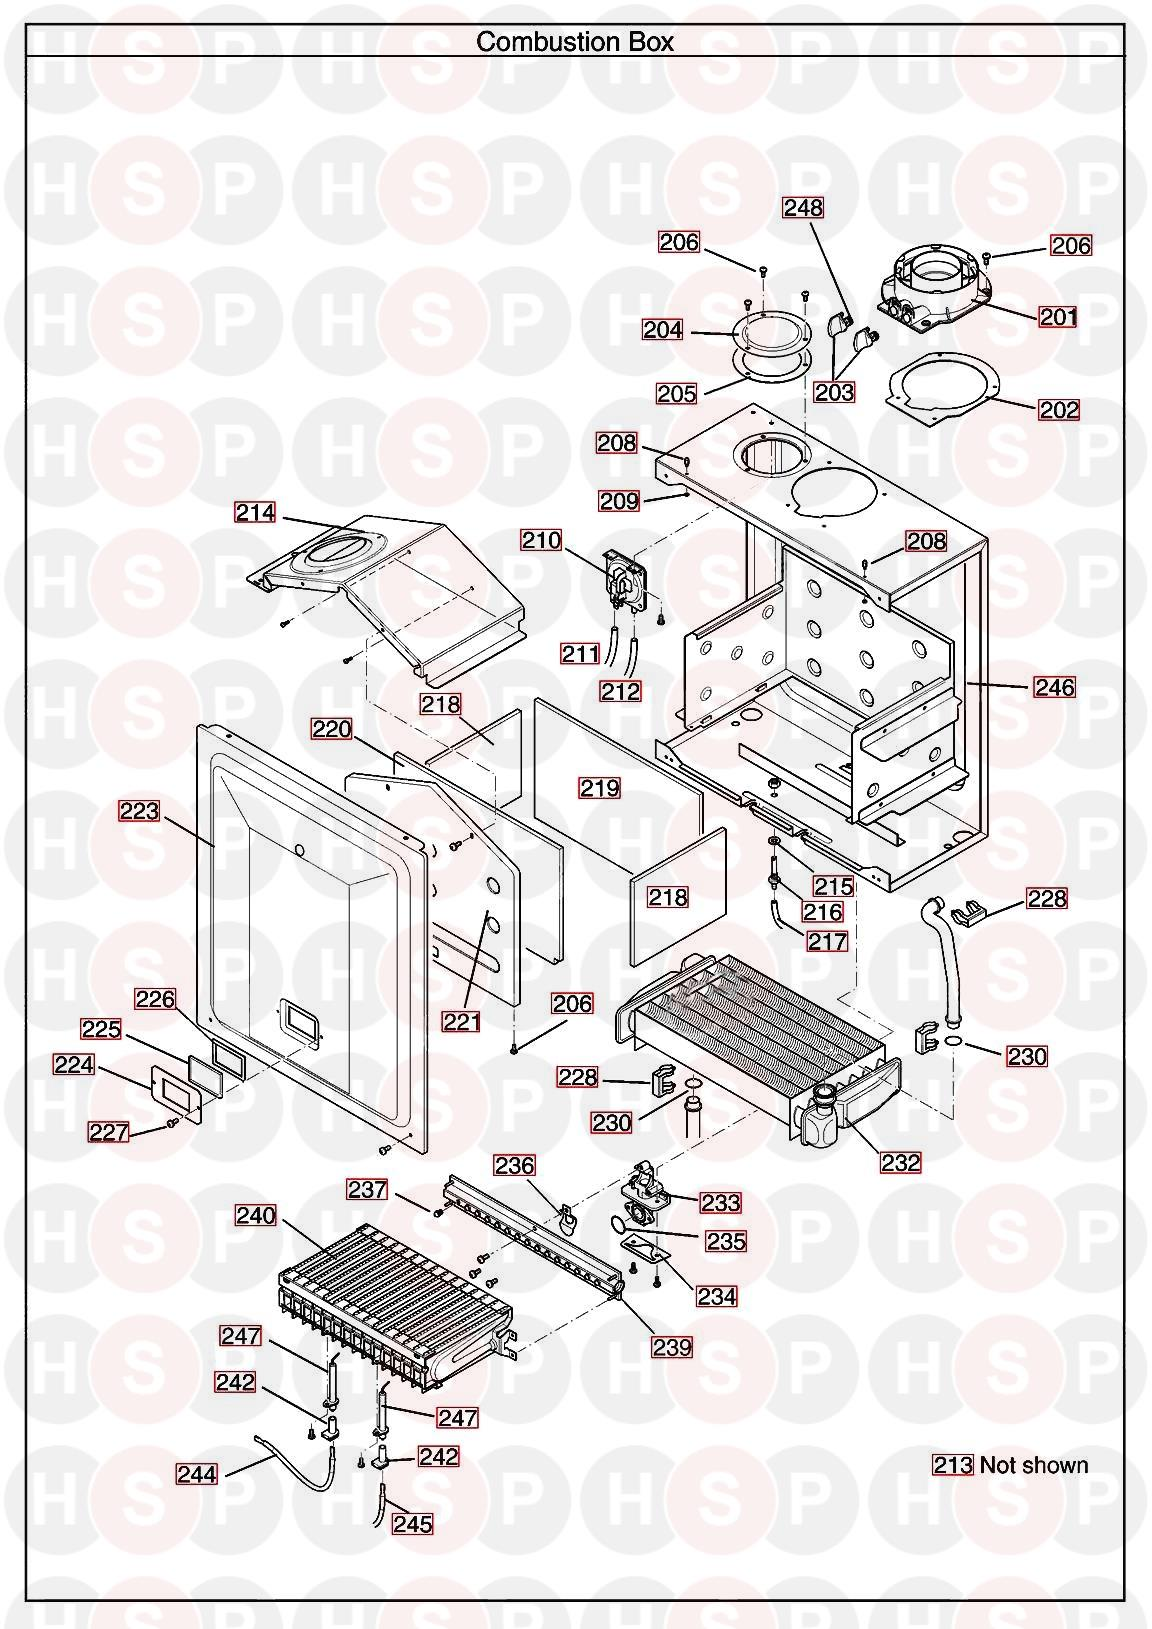 main 18 he system appliance diagram  combustion box